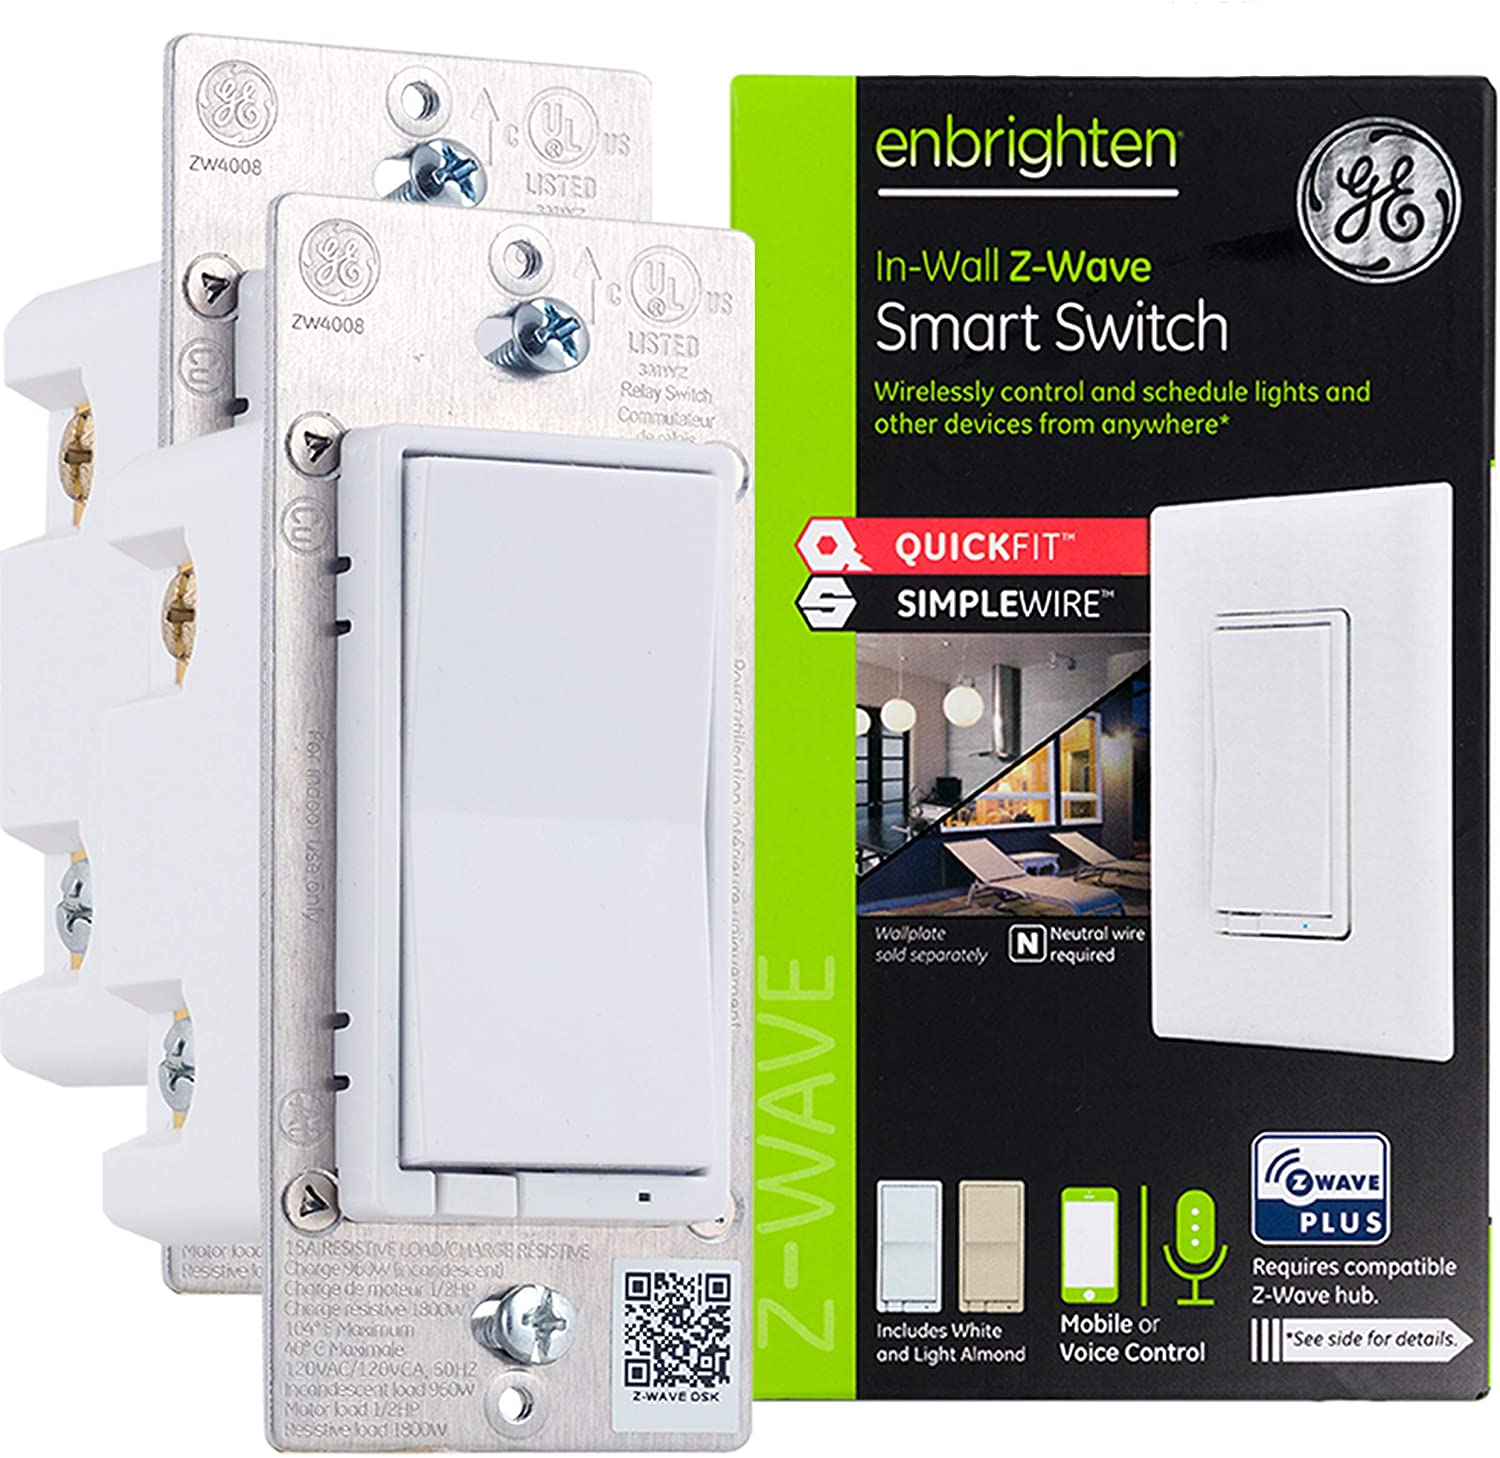 2-Pack GE Enbrighten Z-Wave Smart Switches (47900)